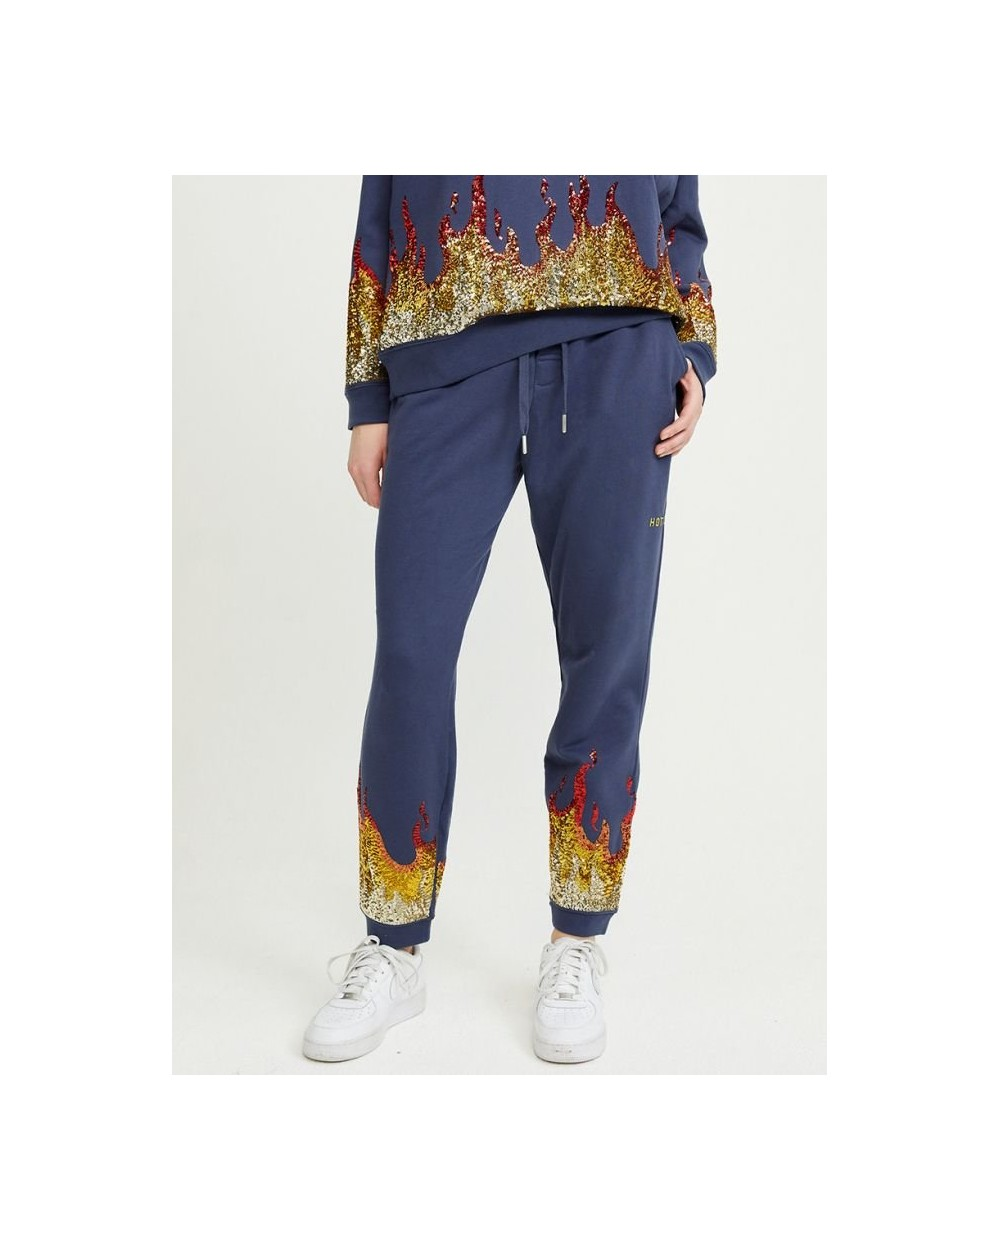 PANTALON HOT FOR YOU BOYFRIEND FIT